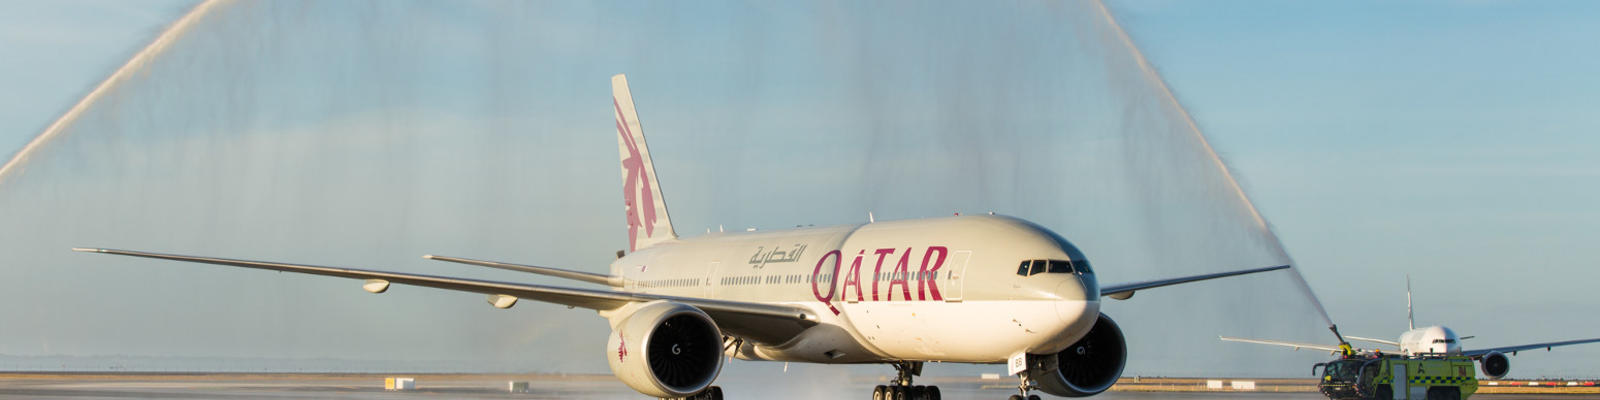 Qatar Airways Boeing 777 at Auckland Airport.